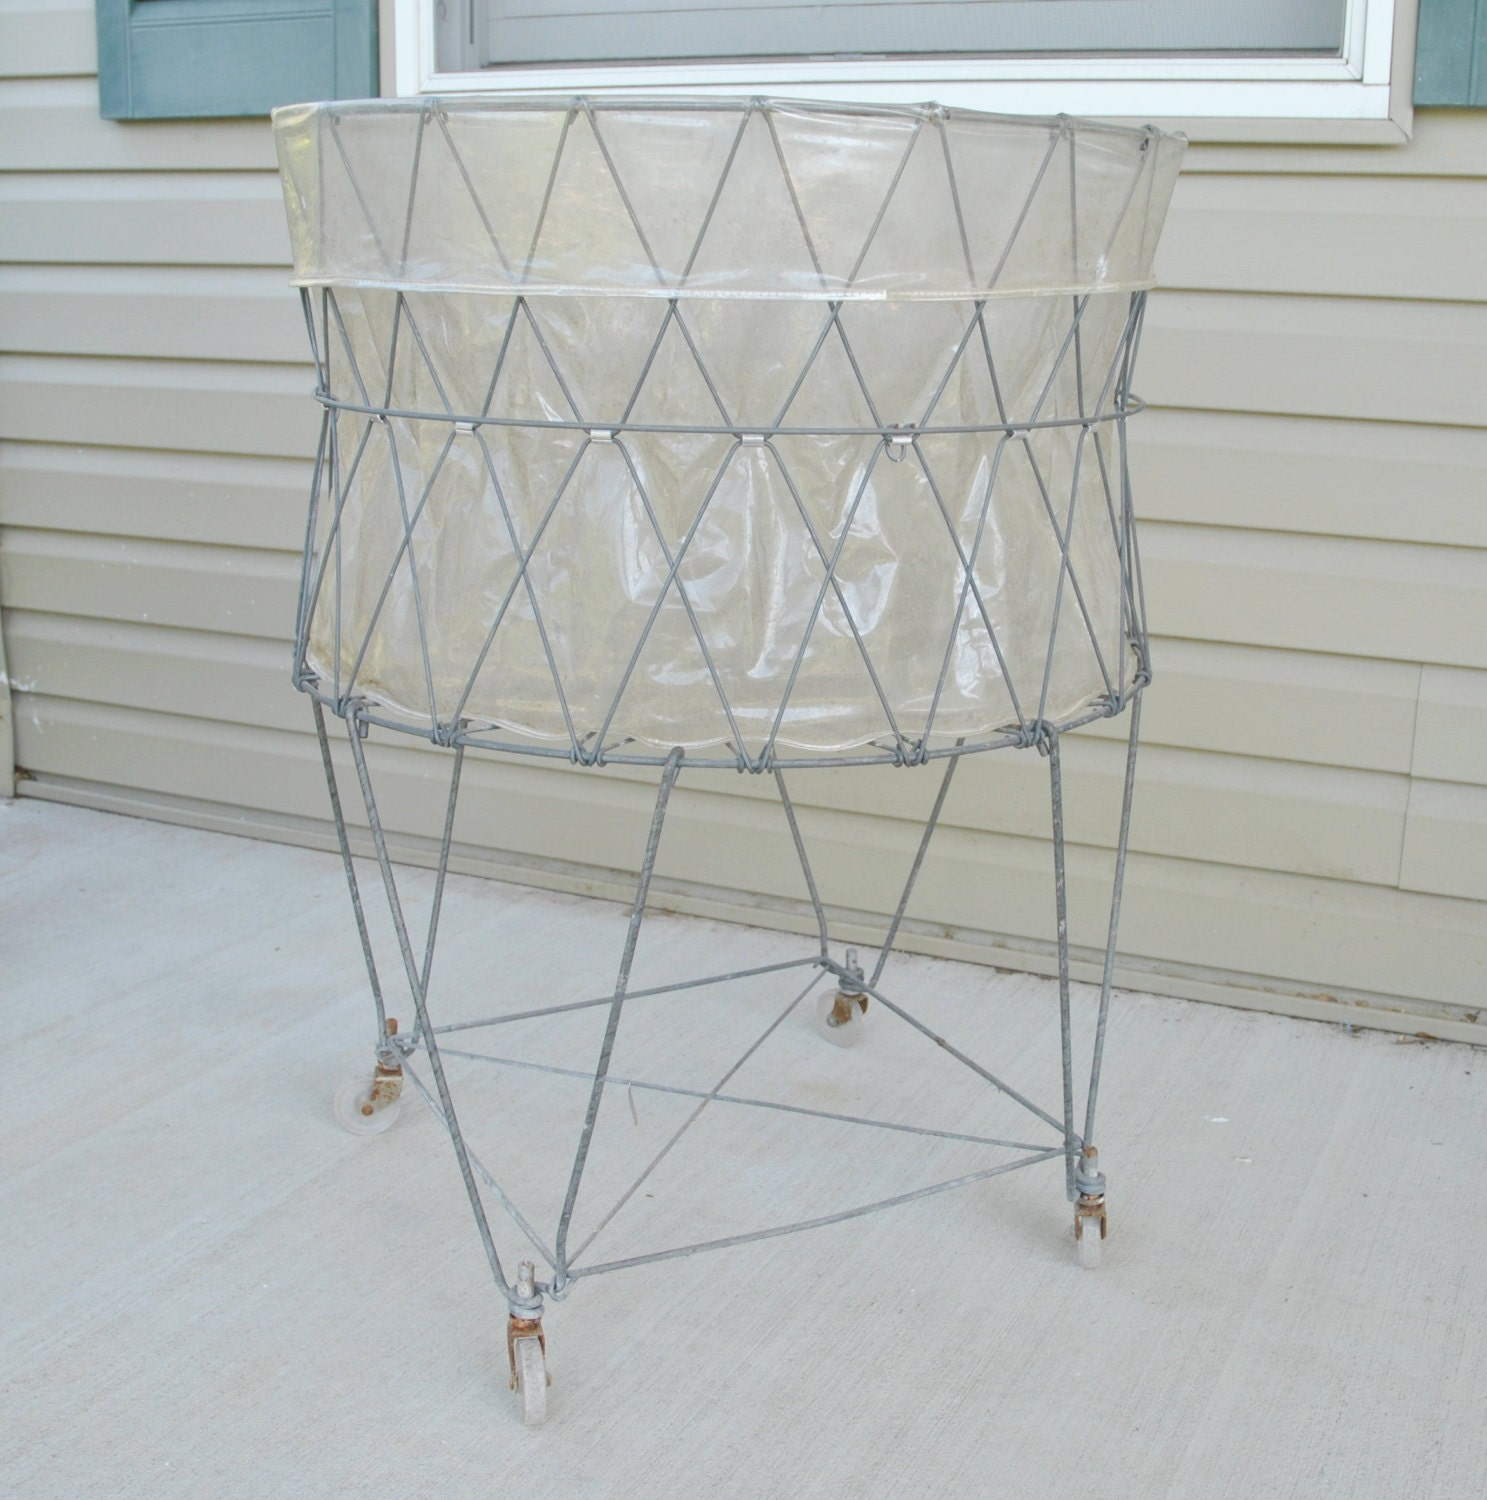 Vintage allied wire collapsible laundry basket cart on wheels - Collapsible laundry basket with wheels ...